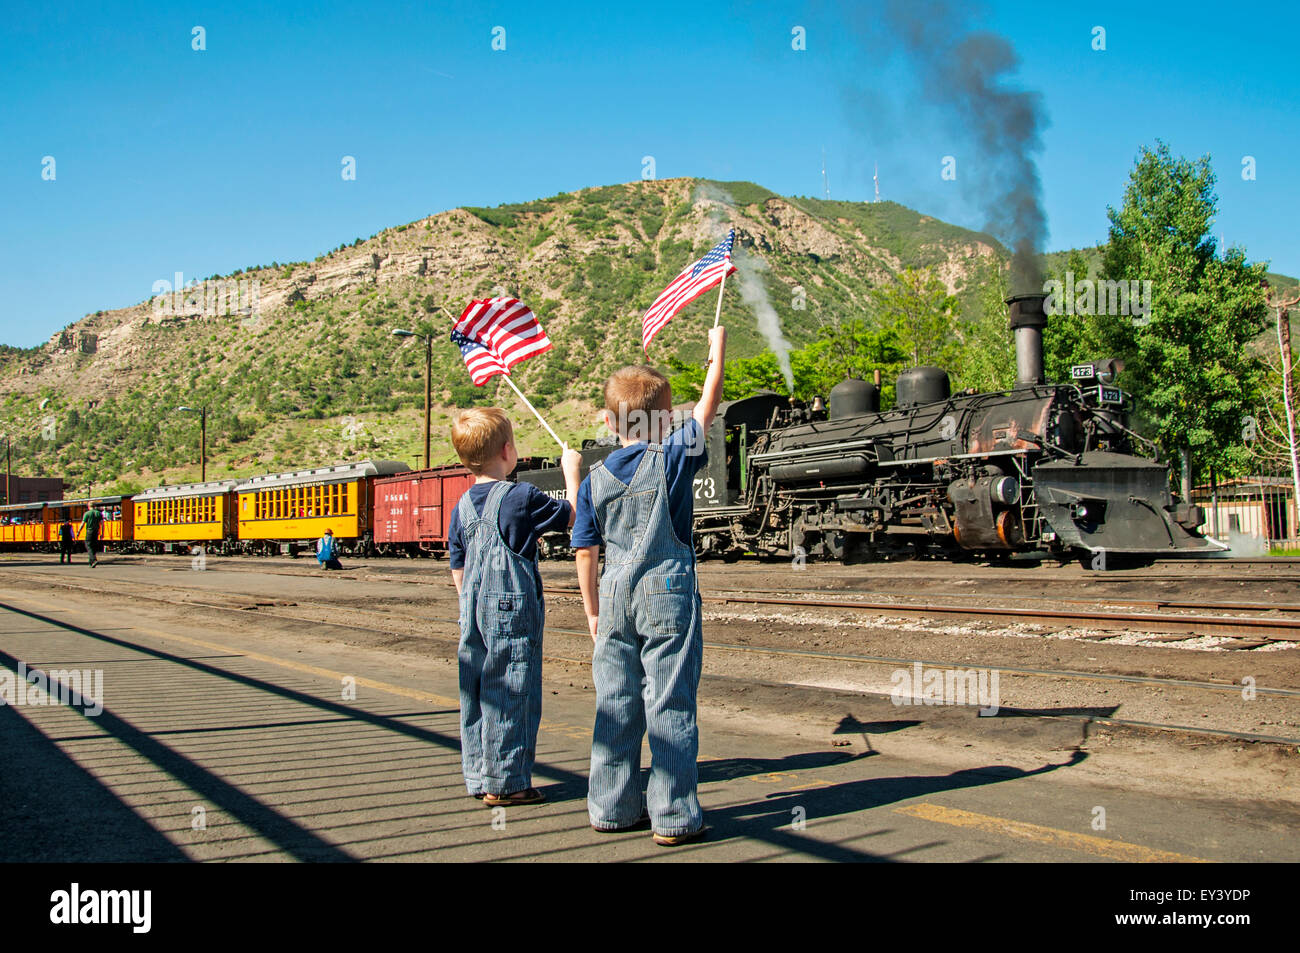 Boys wave American flags at departing train - Stock Image